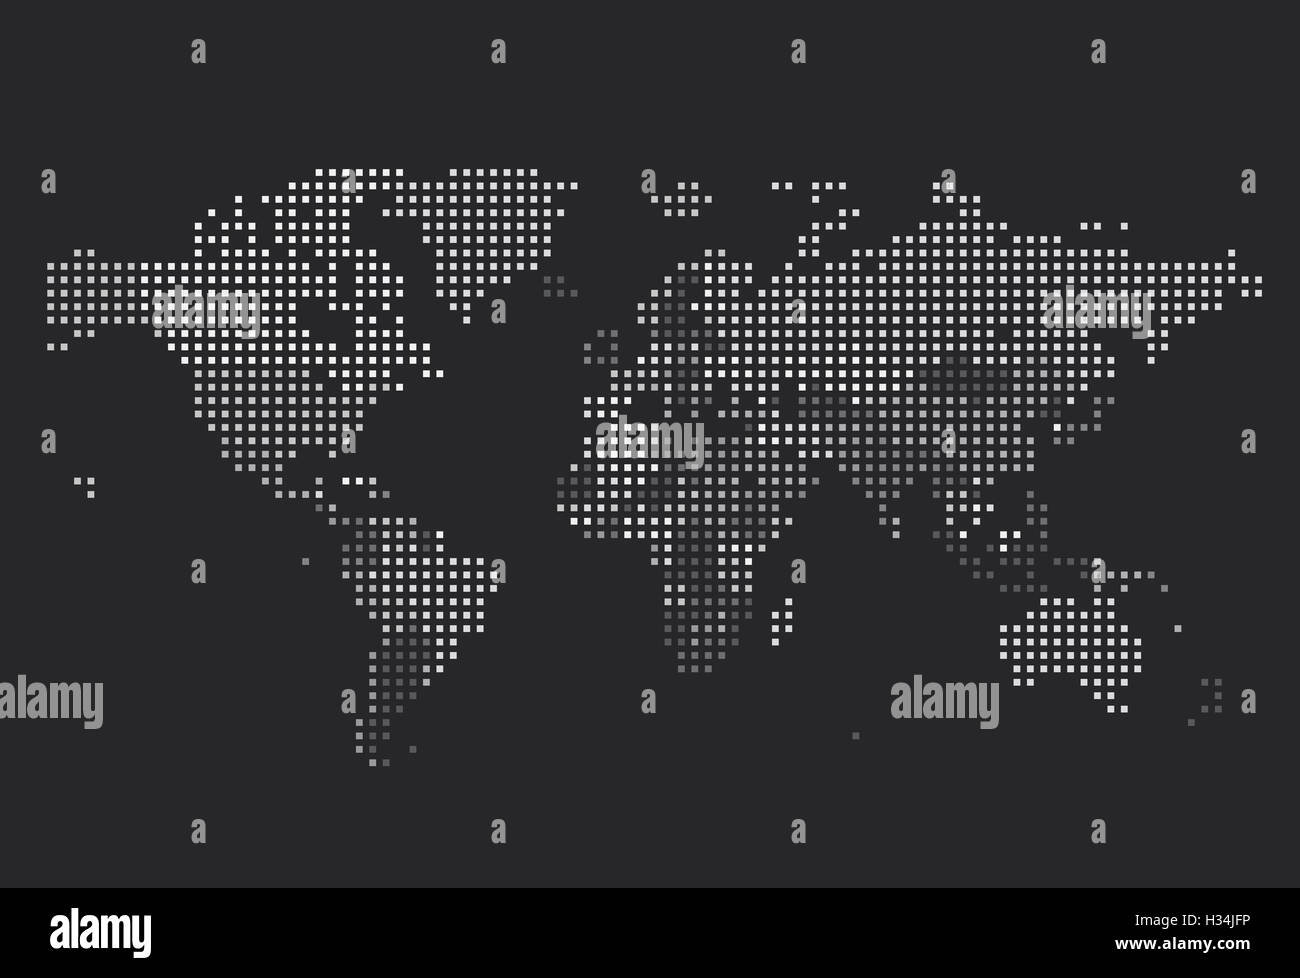 Dotted world map of square dots on dark background stock photo dotted world map of square dots on dark background stock photo 122418906 alamy gumiabroncs